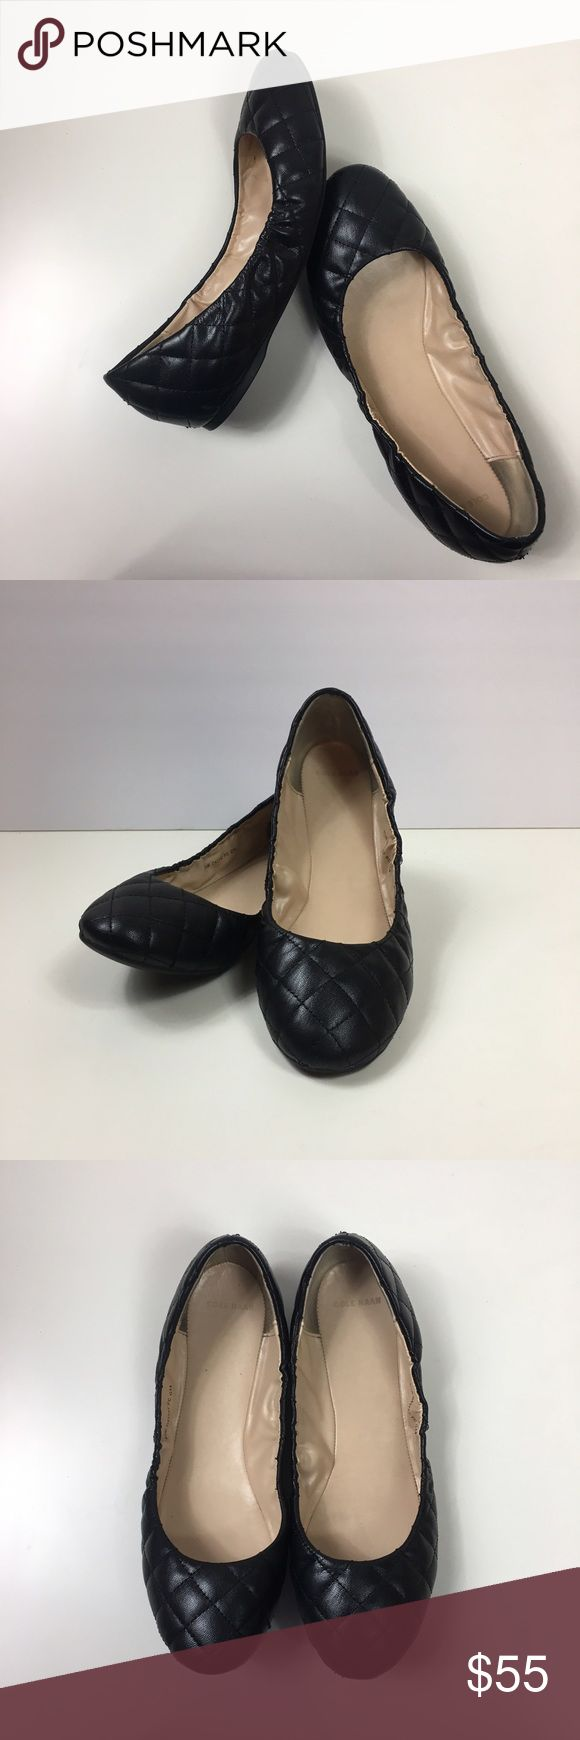 Quilted Cole Haan Black Leather Flats Very lightly worn! Every girl needs a few solid black leather flats that match everything. Quilted. No trades Cole Haan Shoes Flats & Loafers